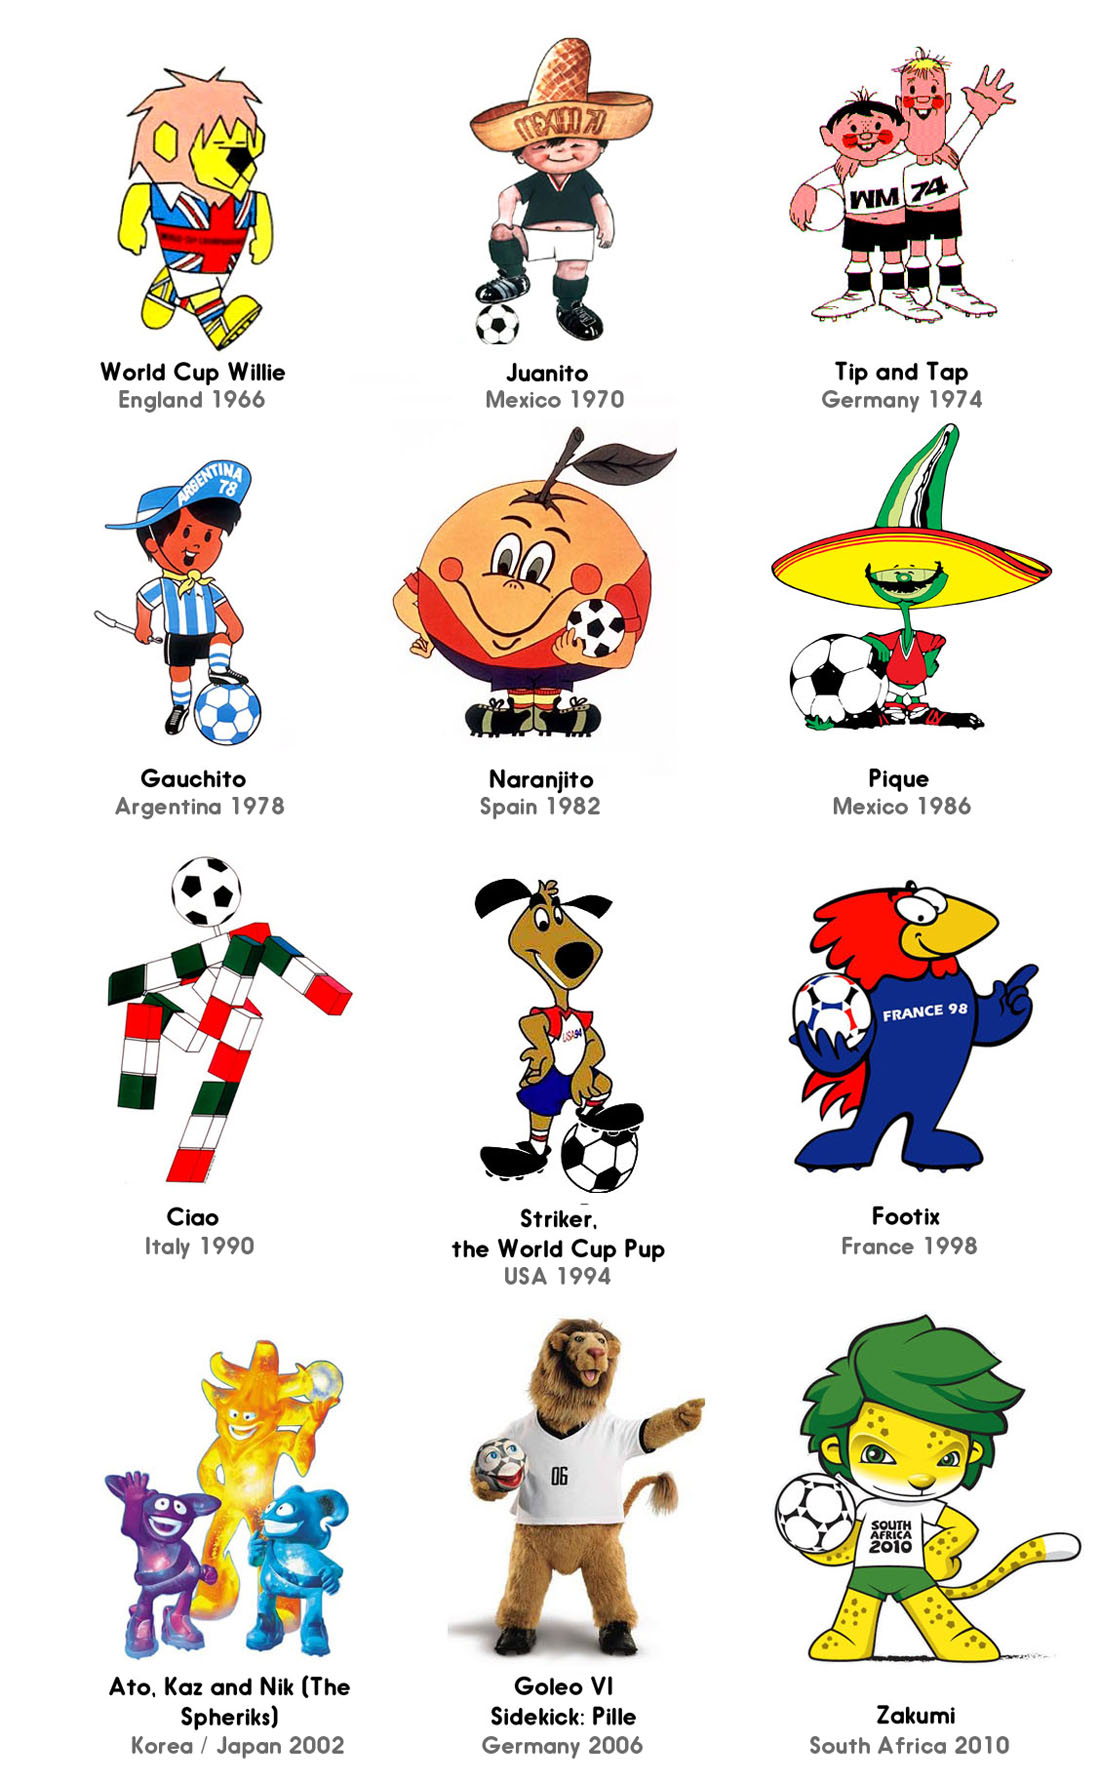 World Cup characters